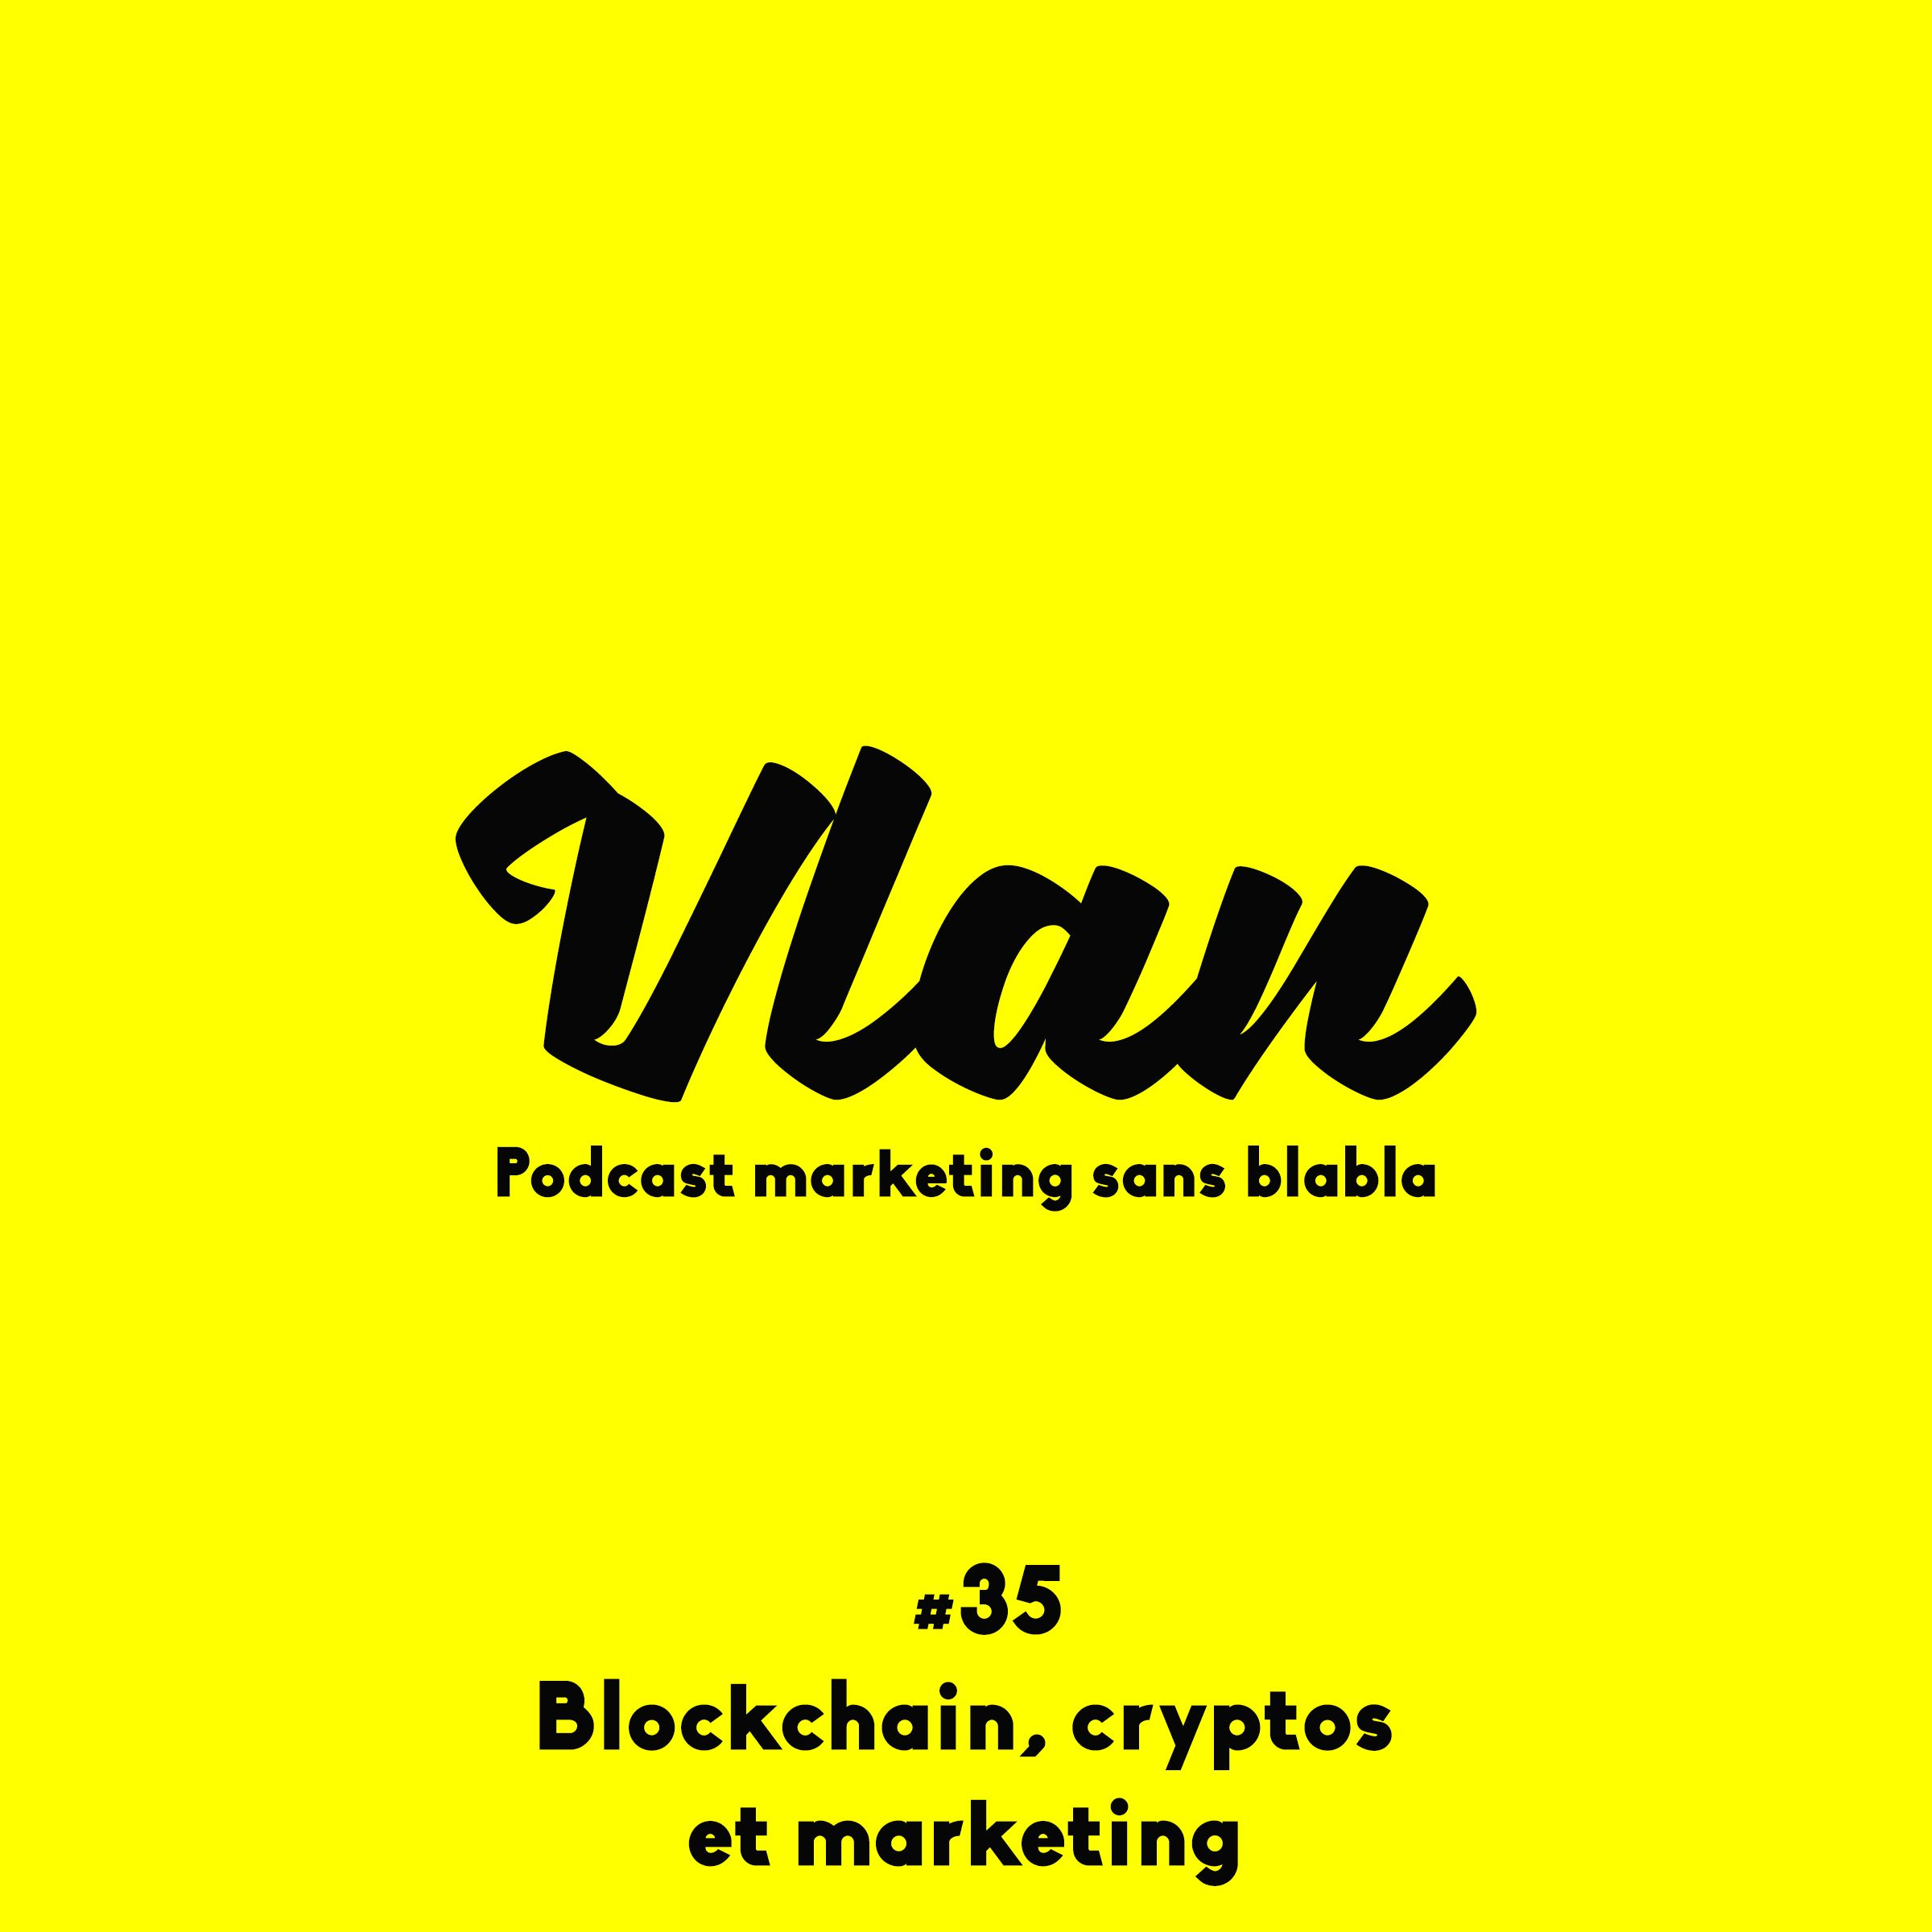 Vlan #35 L'impact de la Blockchain et des crypto monnaies sur le marketing